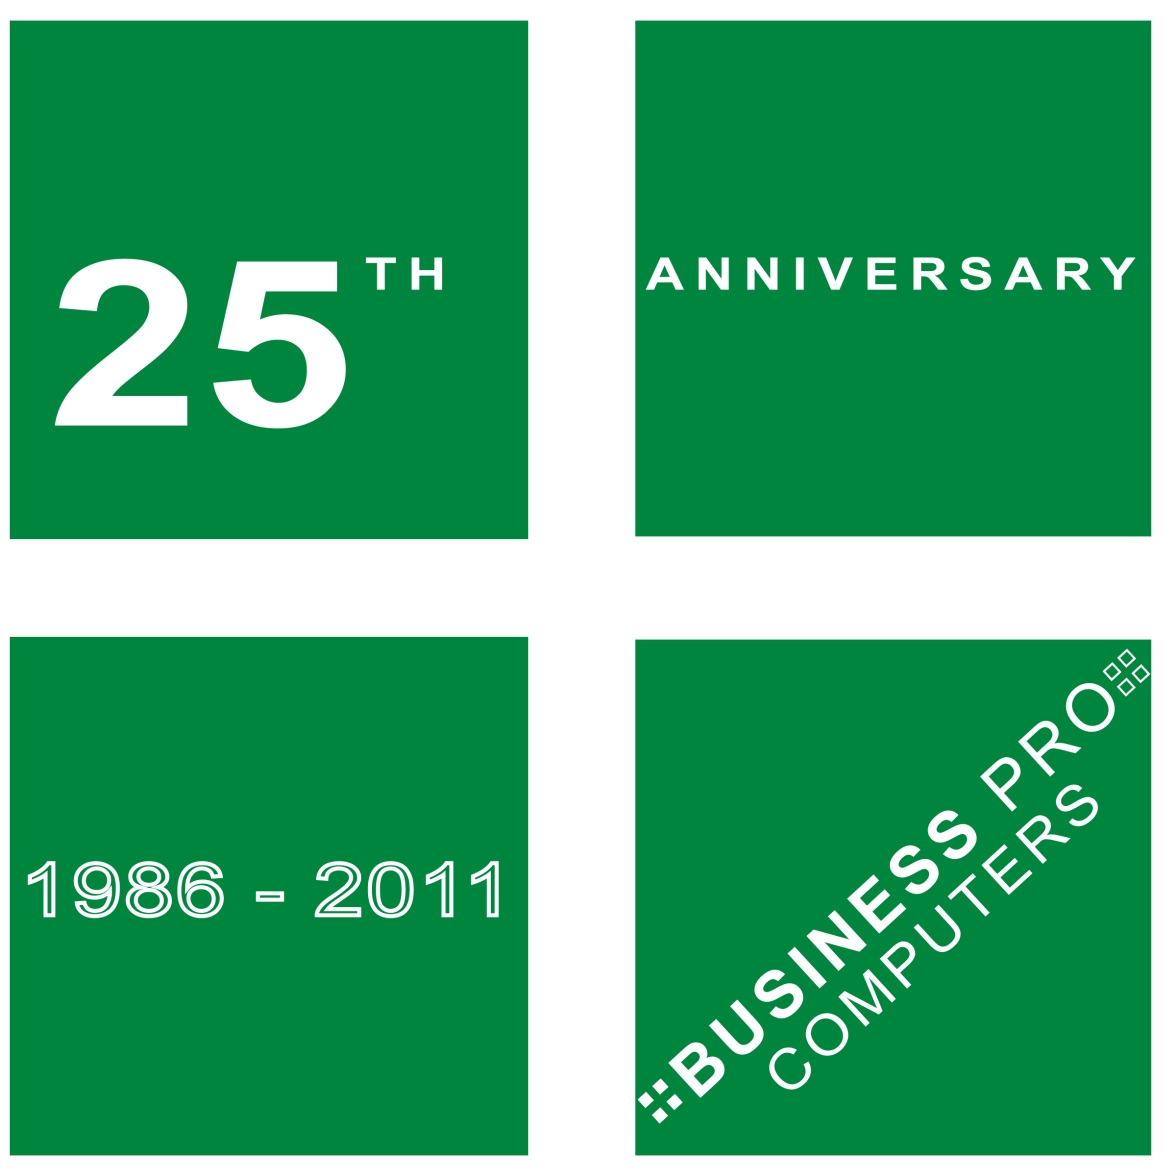 Logo Design by LLP7 - Entry No. 91 in the Logo Design Contest 25th Anniversary Logo Contest.